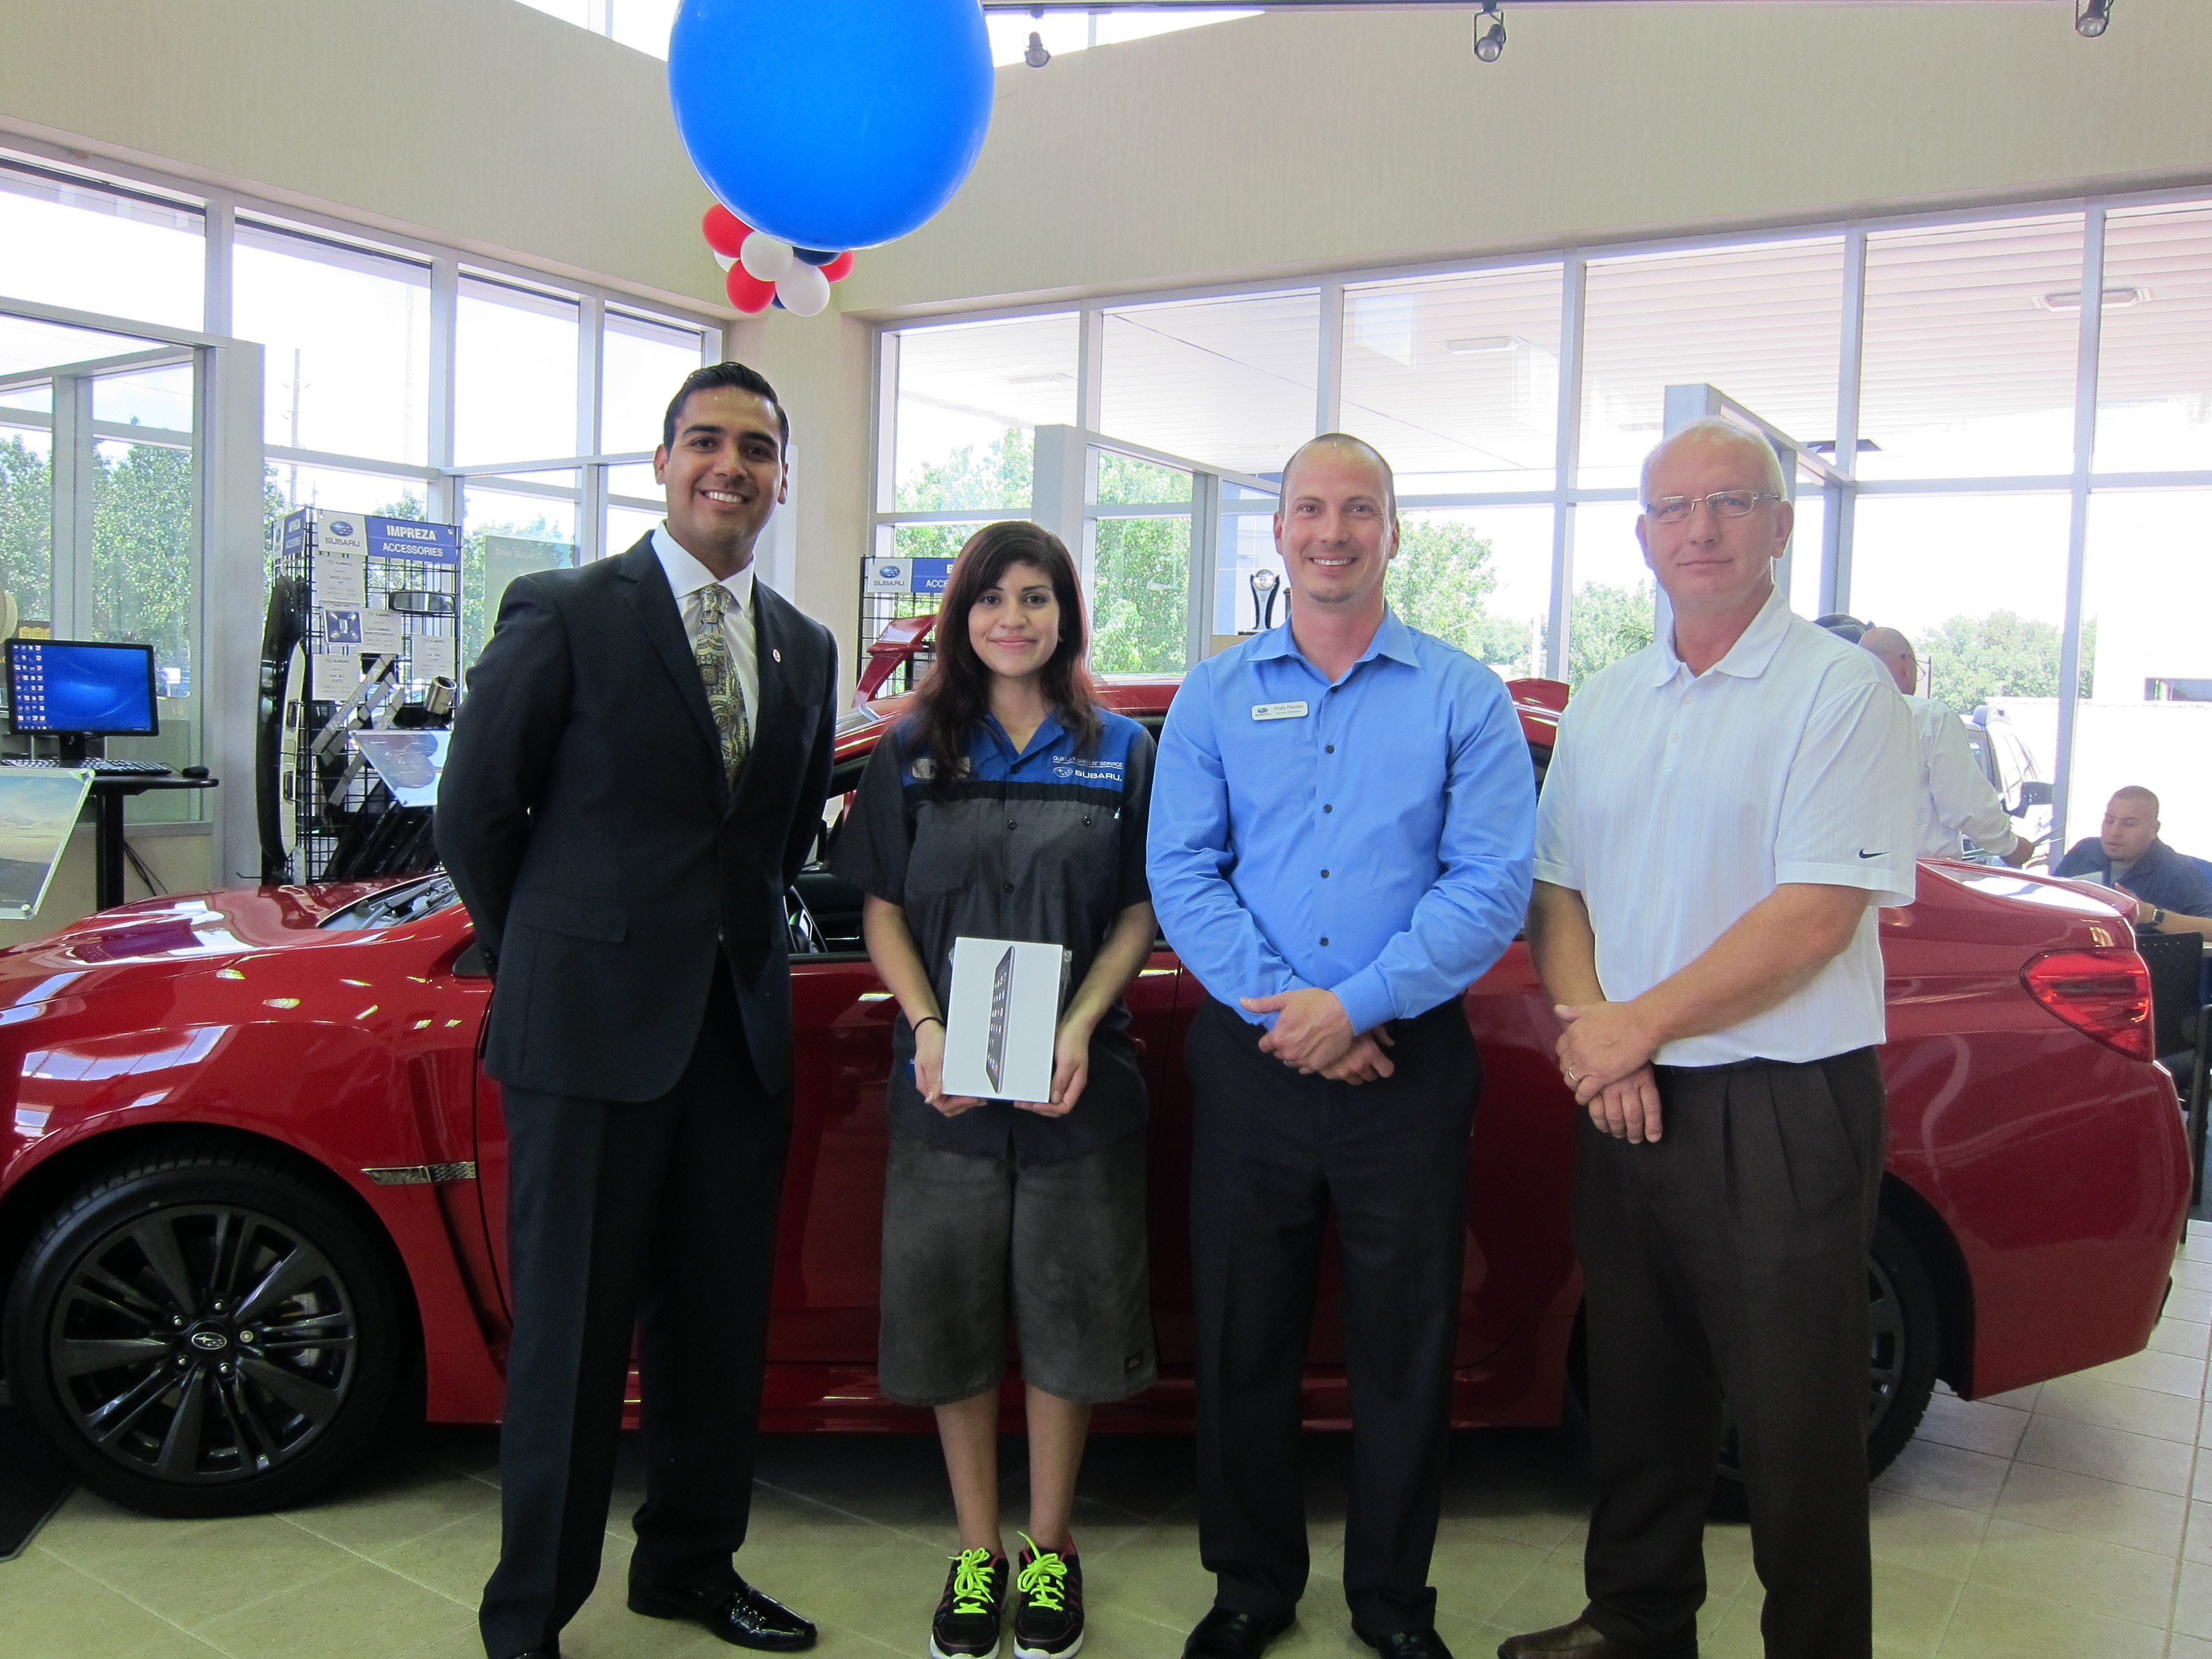 gillman automotive group qmr of the month award presented to